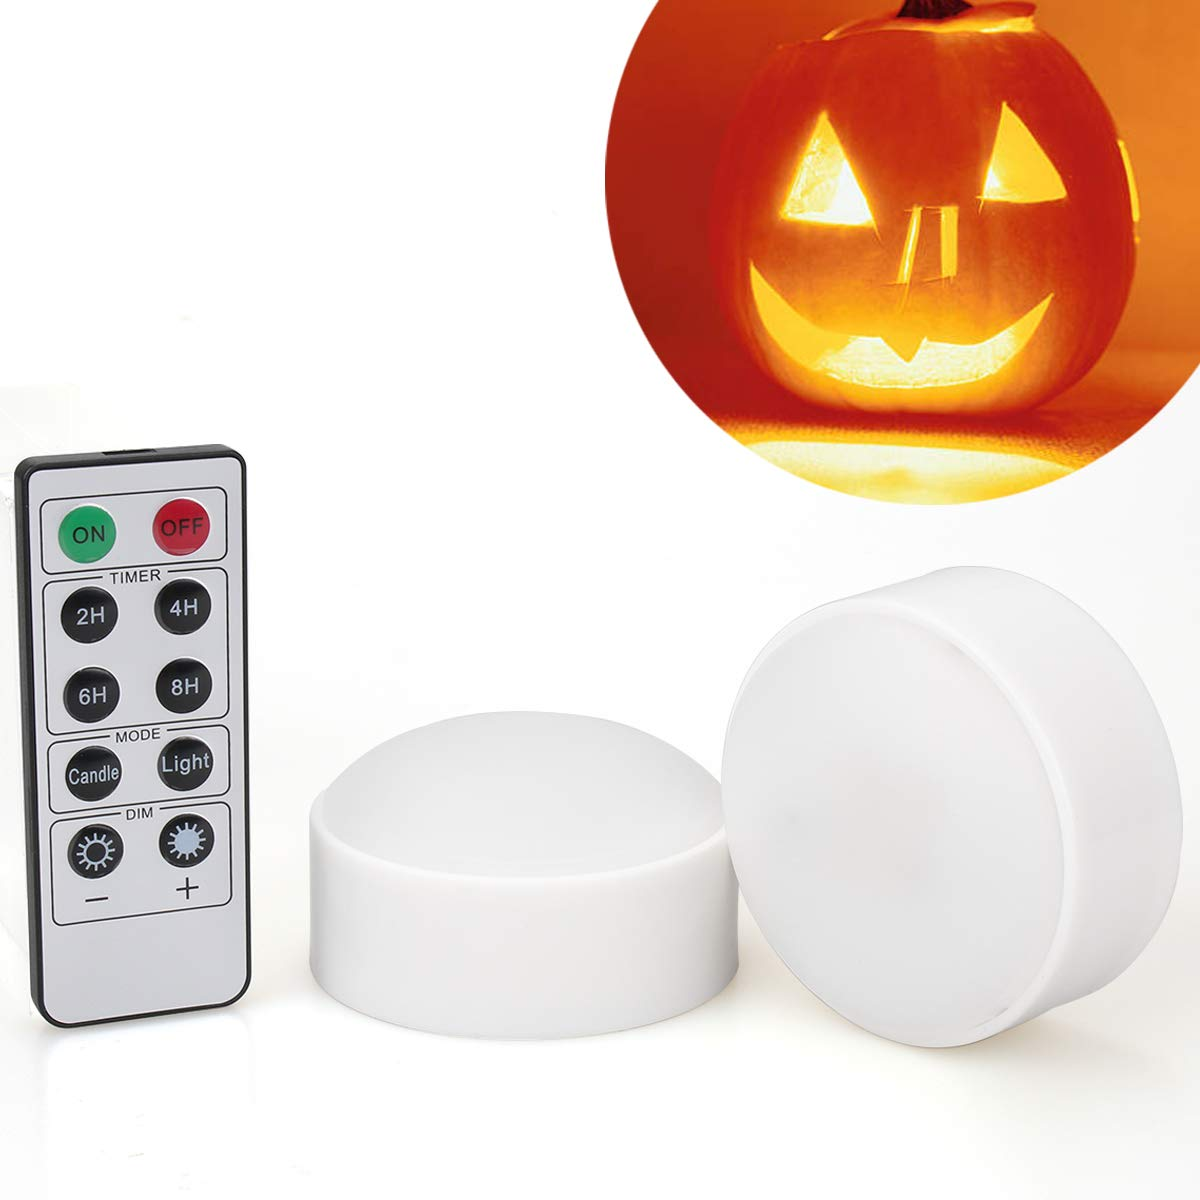 [2-Pack] Halloween LED Pumpkin Lights with Remote and Timer, Battery Operated Orange Jack-O-Lantern Light for Halloween Decor, Flameless Candles for Pumpkin by Luditek